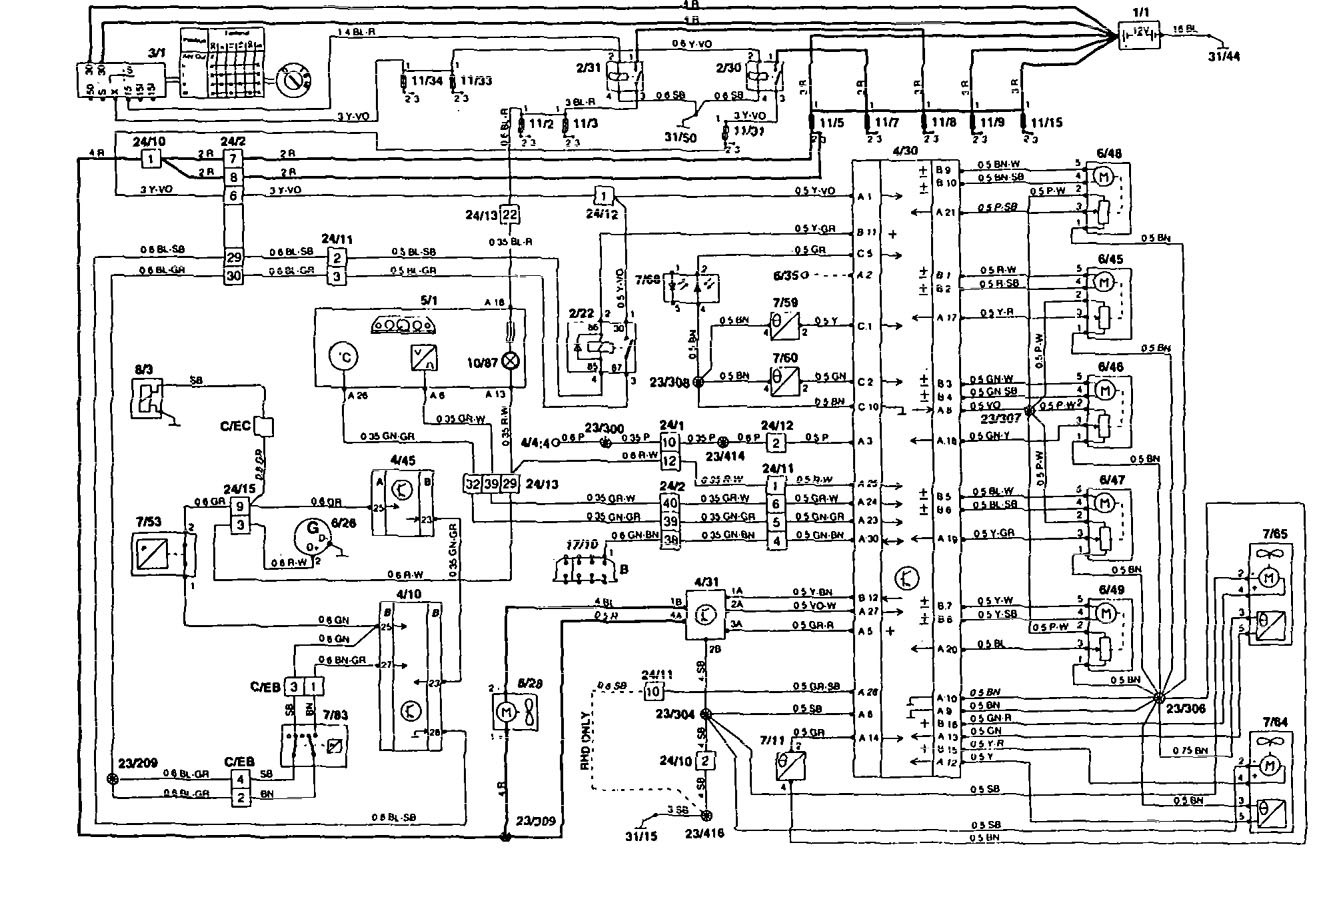 Volvo 850 1995 wiring diagrams hvac controls carknowledge volvo 850 1995 wiring diagrams hvac controls swarovskicordoba